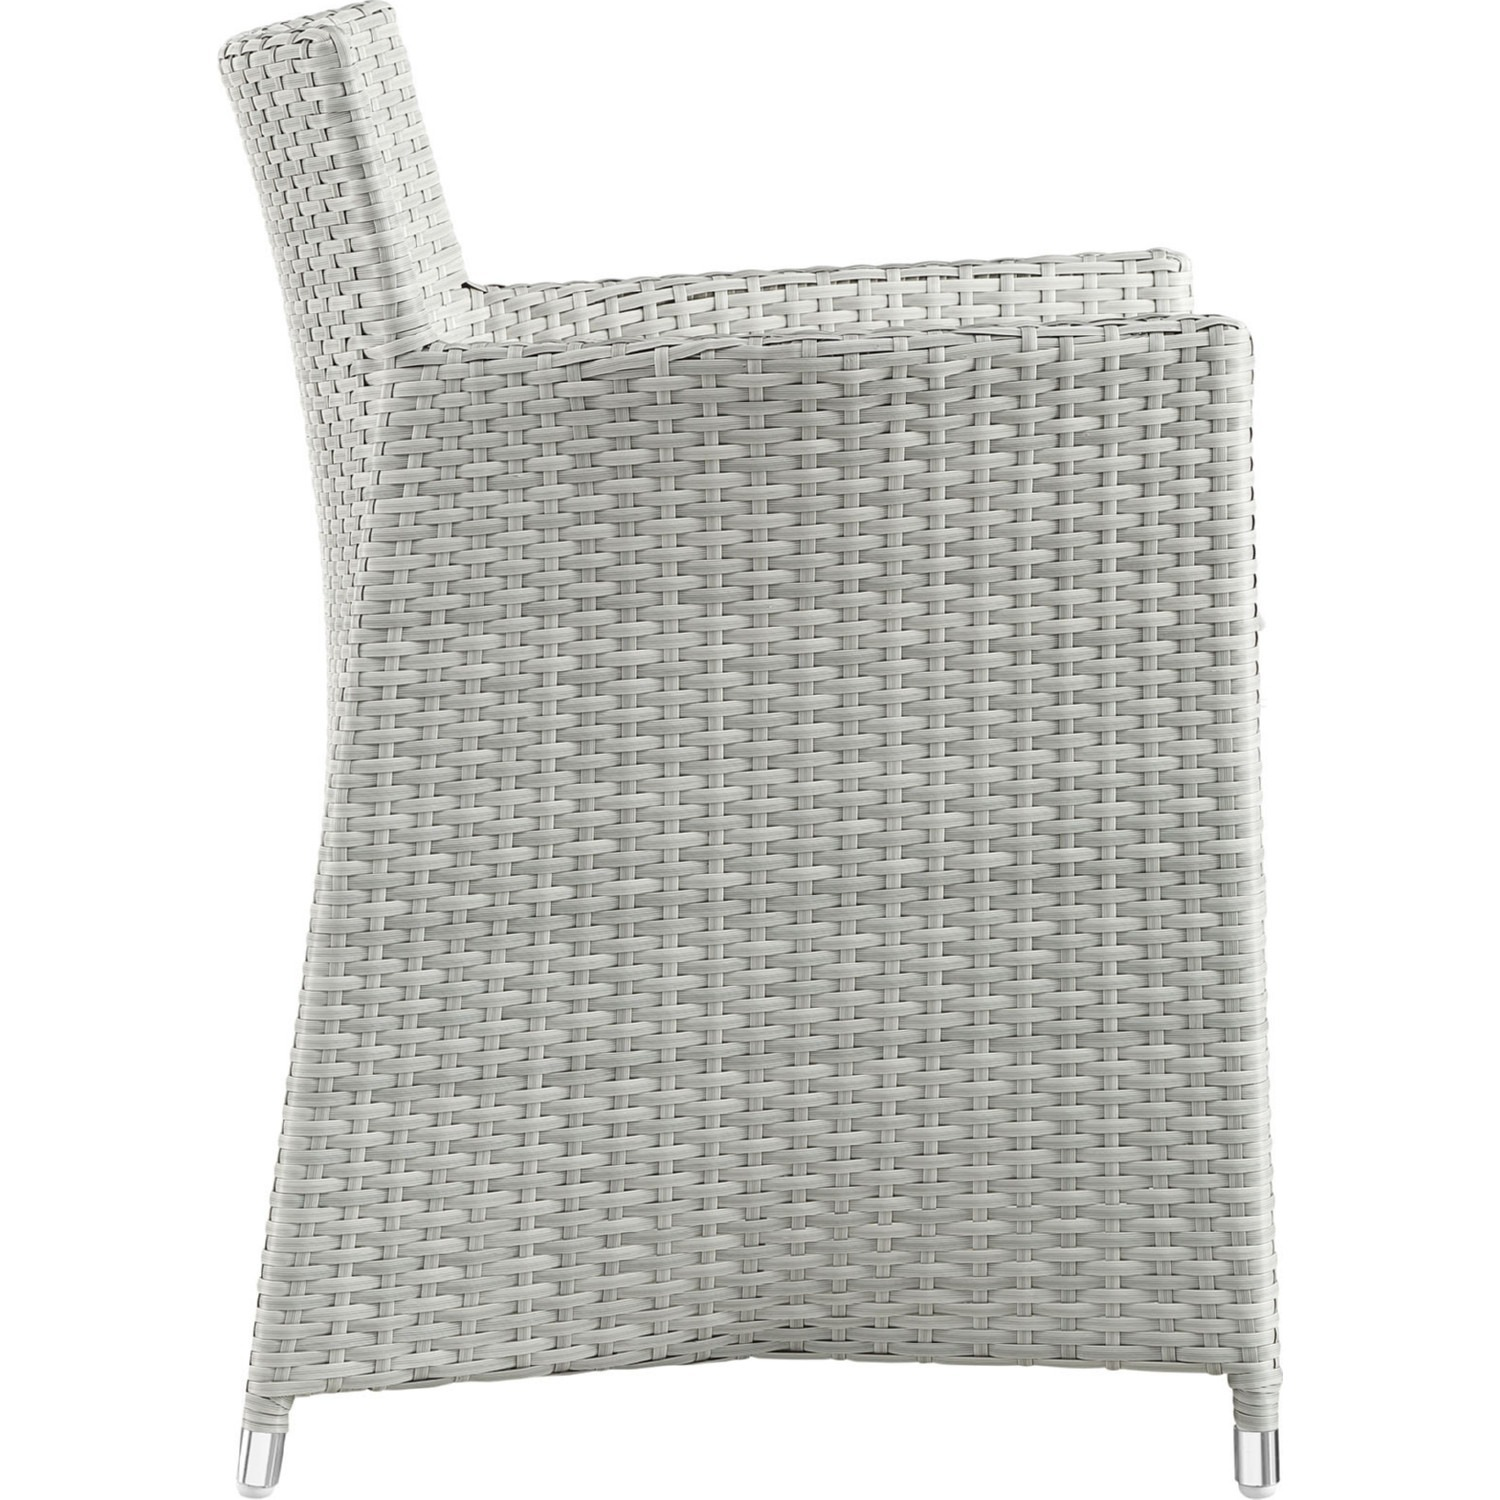 7-Piece Dining Set In Gray Rattan Weave Finish - image-2